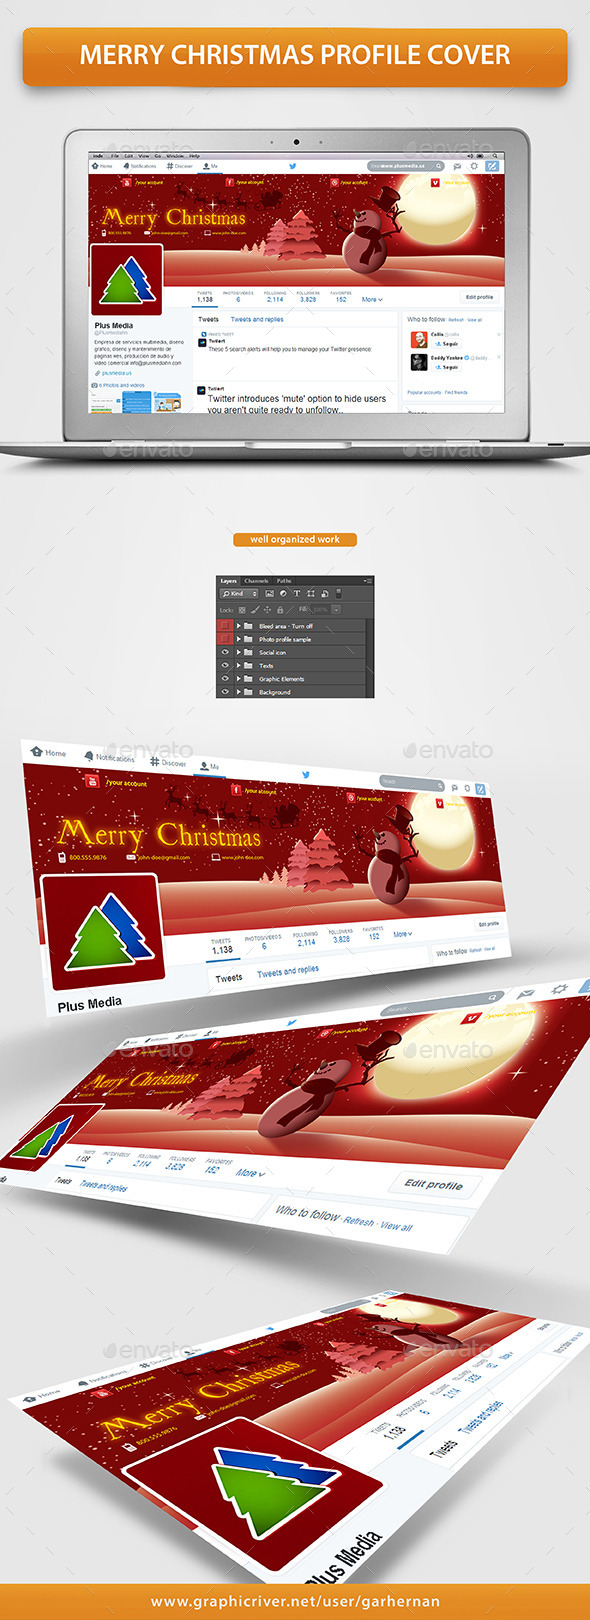 GraphicRiver Merry Christmas Profile Cover 9683302